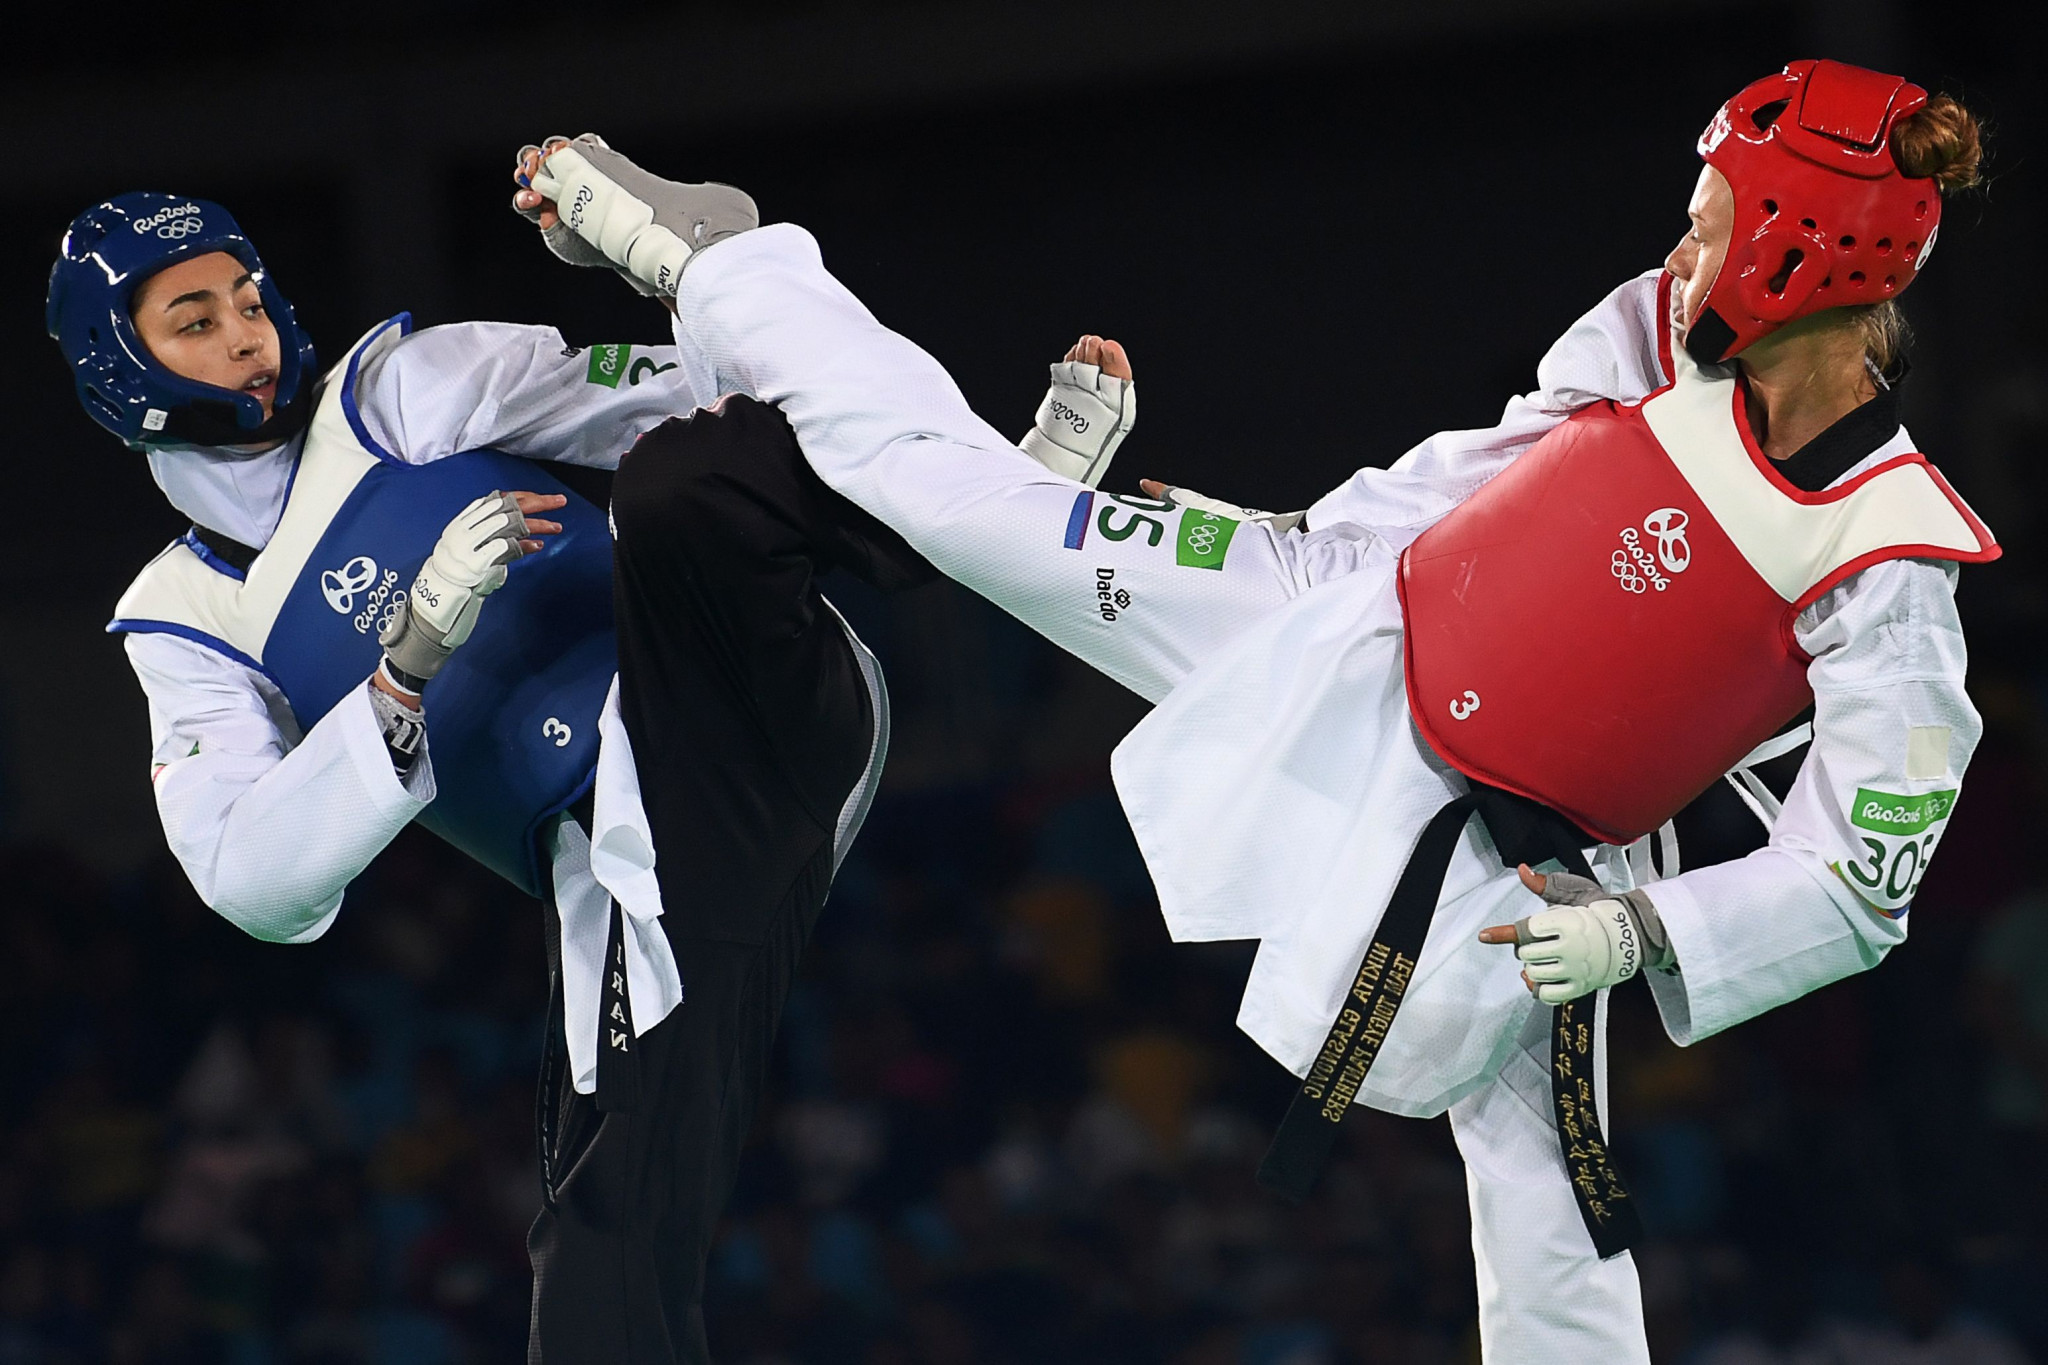 Kimia Alizadeh made history by becoming the first Iranian woman to win an Olympic medal when she claimed bronze in the under-57 kilograms category at Rio 2016 ©Getty Images